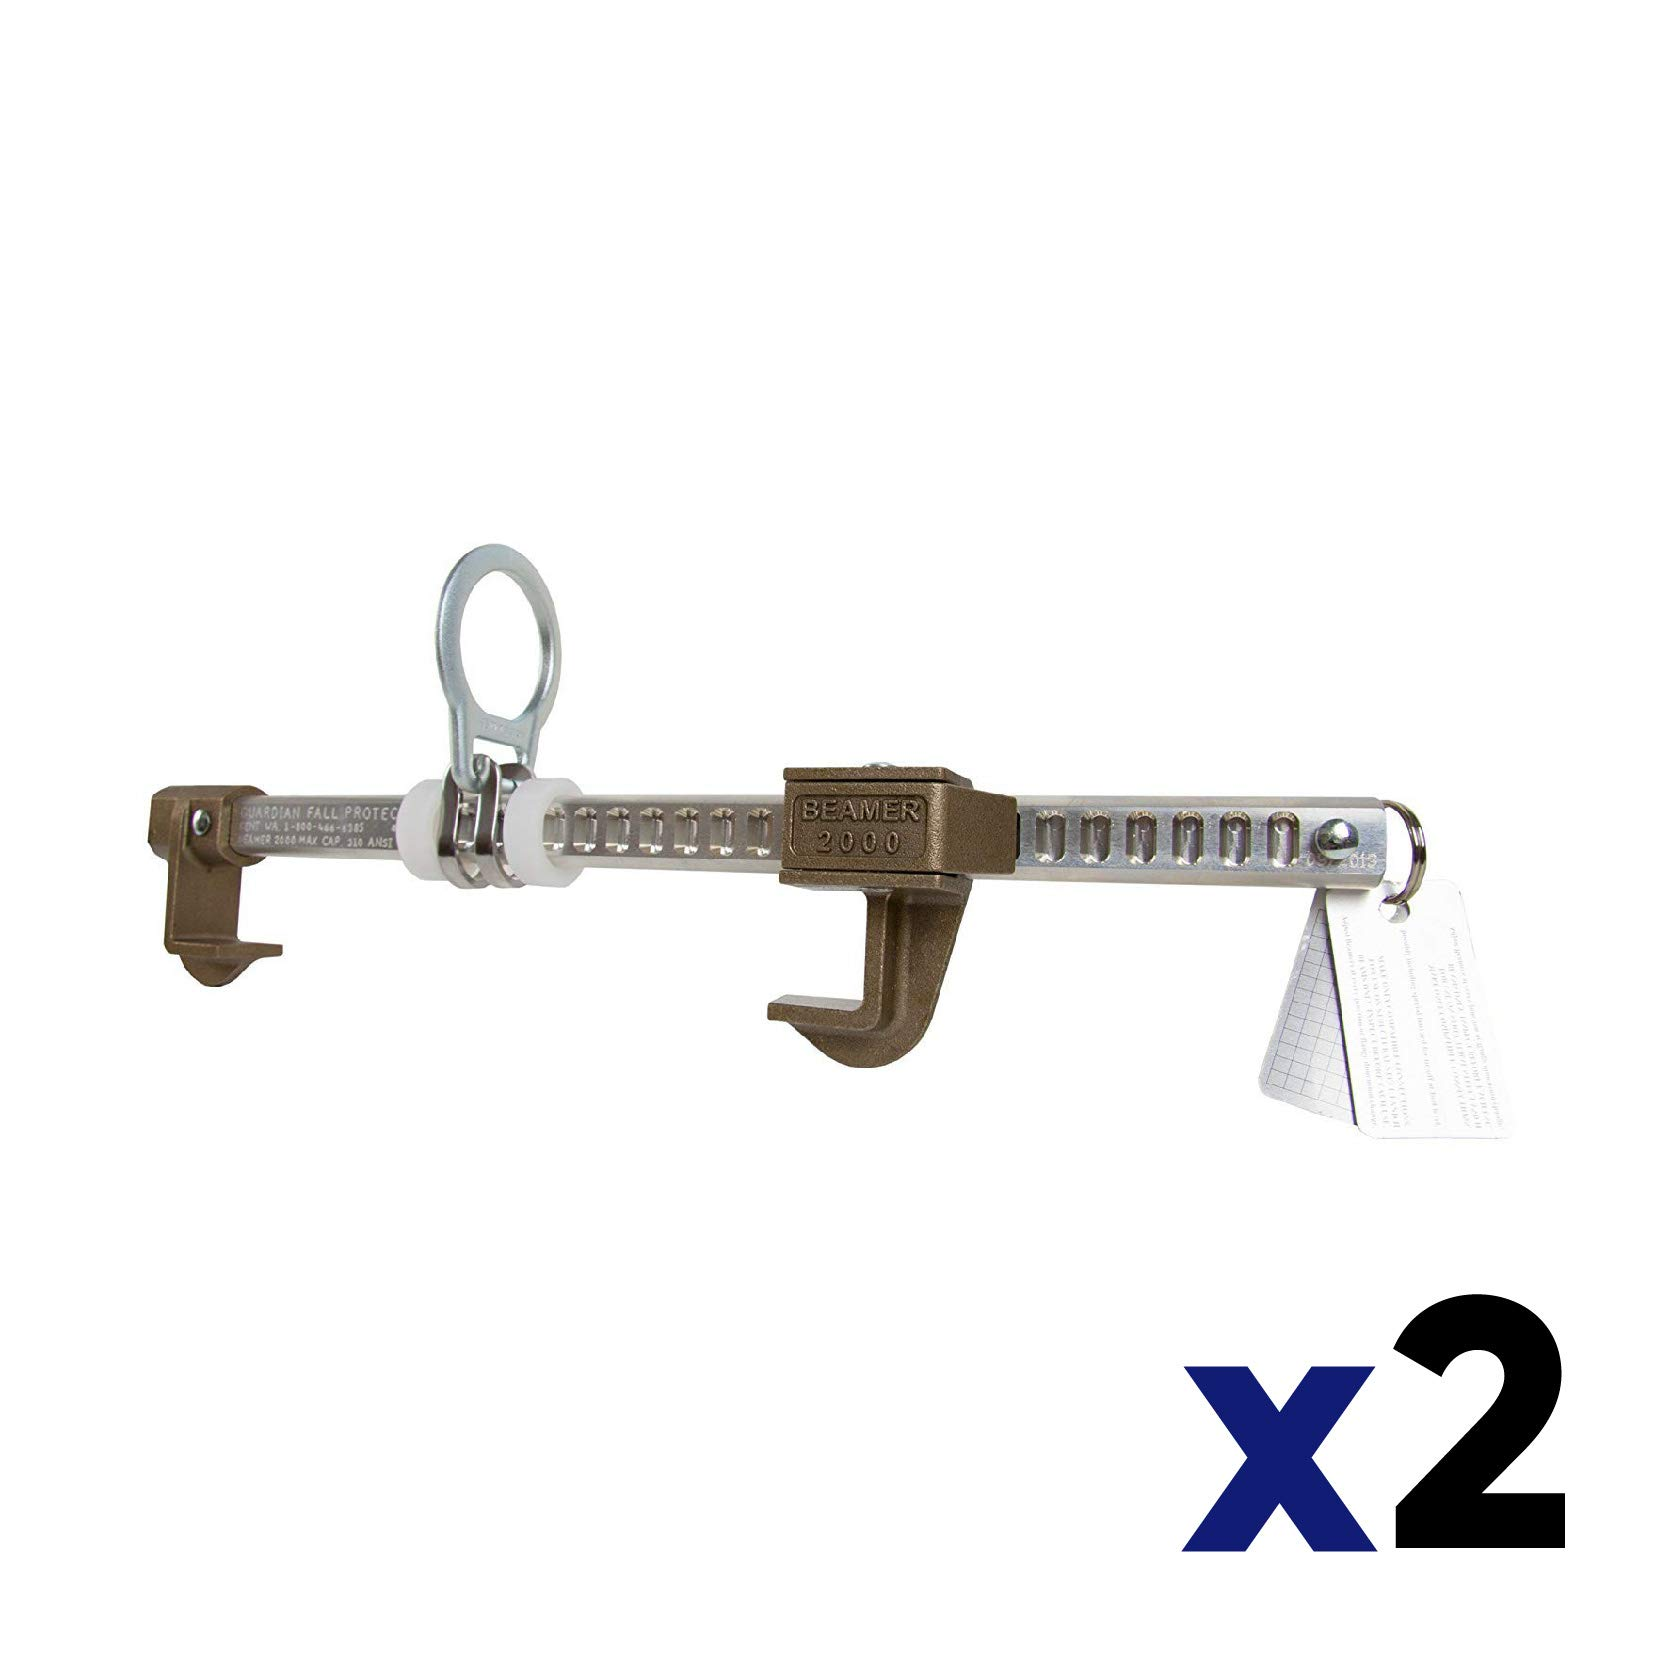 Guardian 00101 Beamer 2000 Fits 3 1/2-14'' Beams (2 Pack) by Guardian Fall Protection